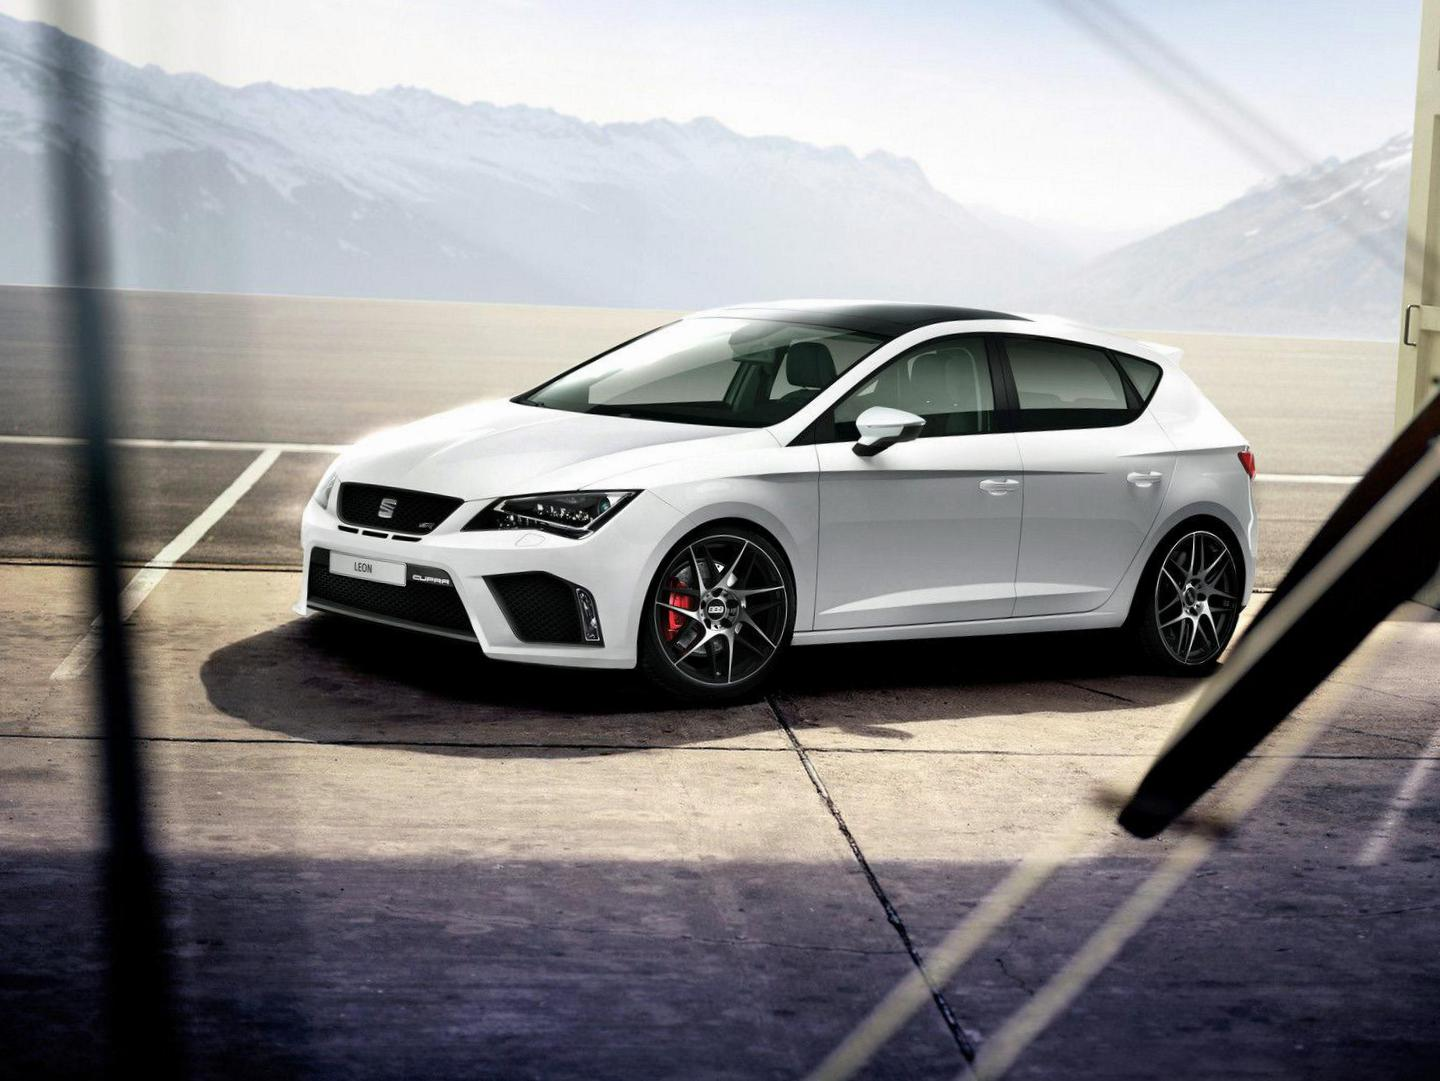 Leon Cupra Seat Specifications wagon